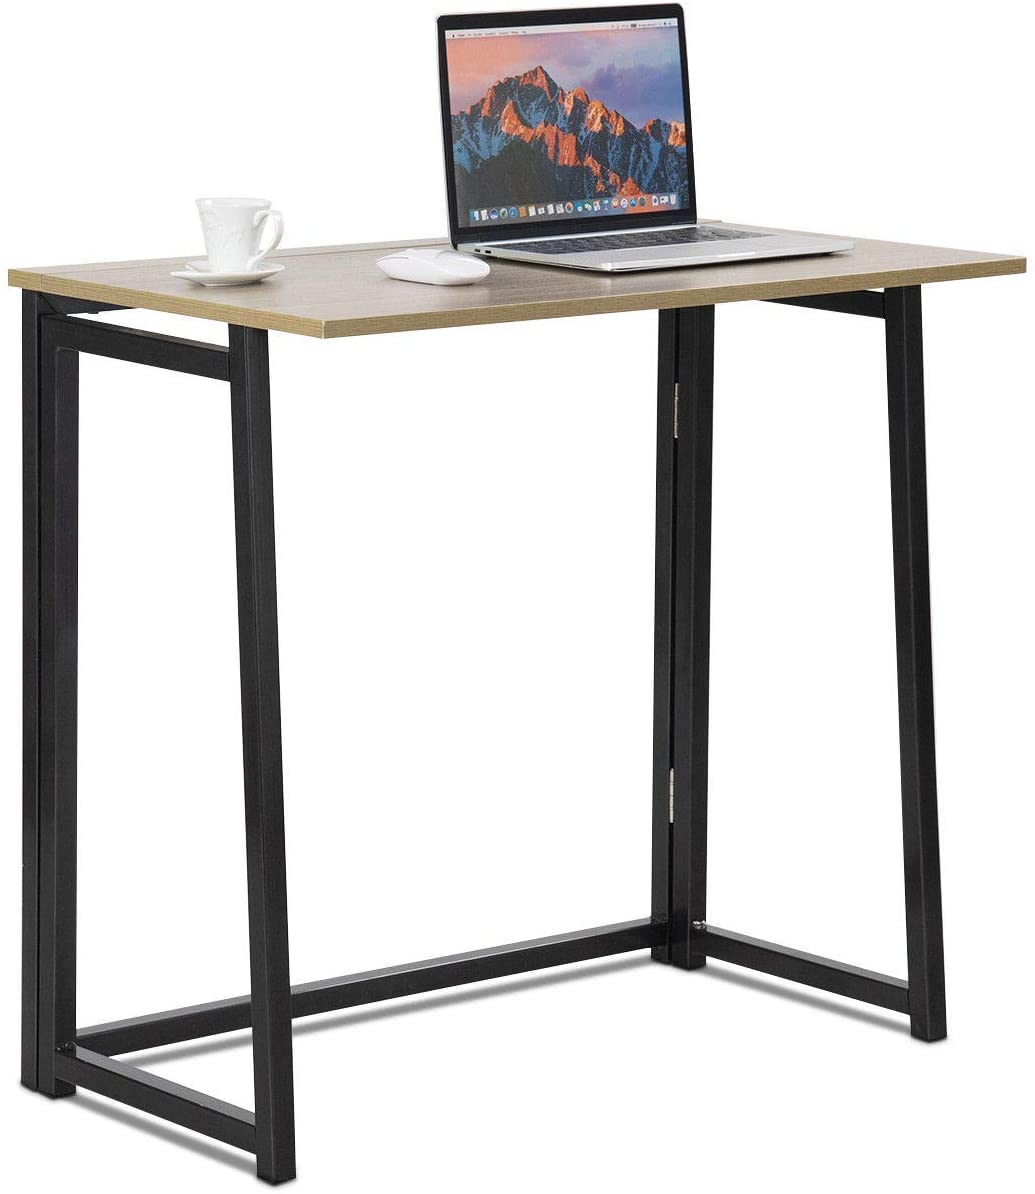 Tangkula Folding Table Small Foldable Computer Desk Home Office Laptop Table Writing Desk Compact Study Reading Table For Small Space Space Saving Office Table Natural Amazon Ca Home Kitchen